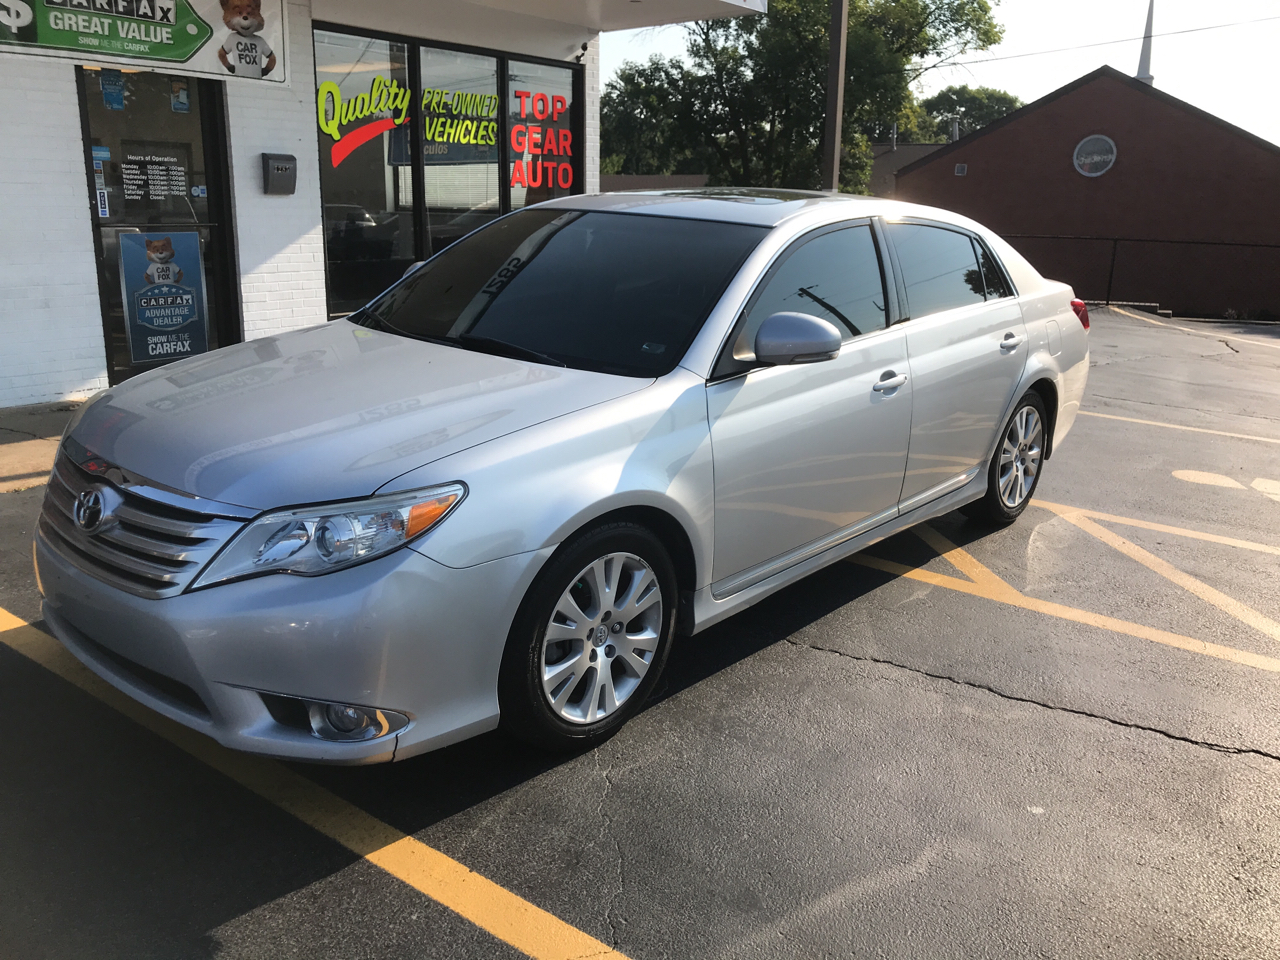 2011 Toyota Avalon LEATHER MOONROOF ALLOYS 74K MILES! A TRUE MUST SEE